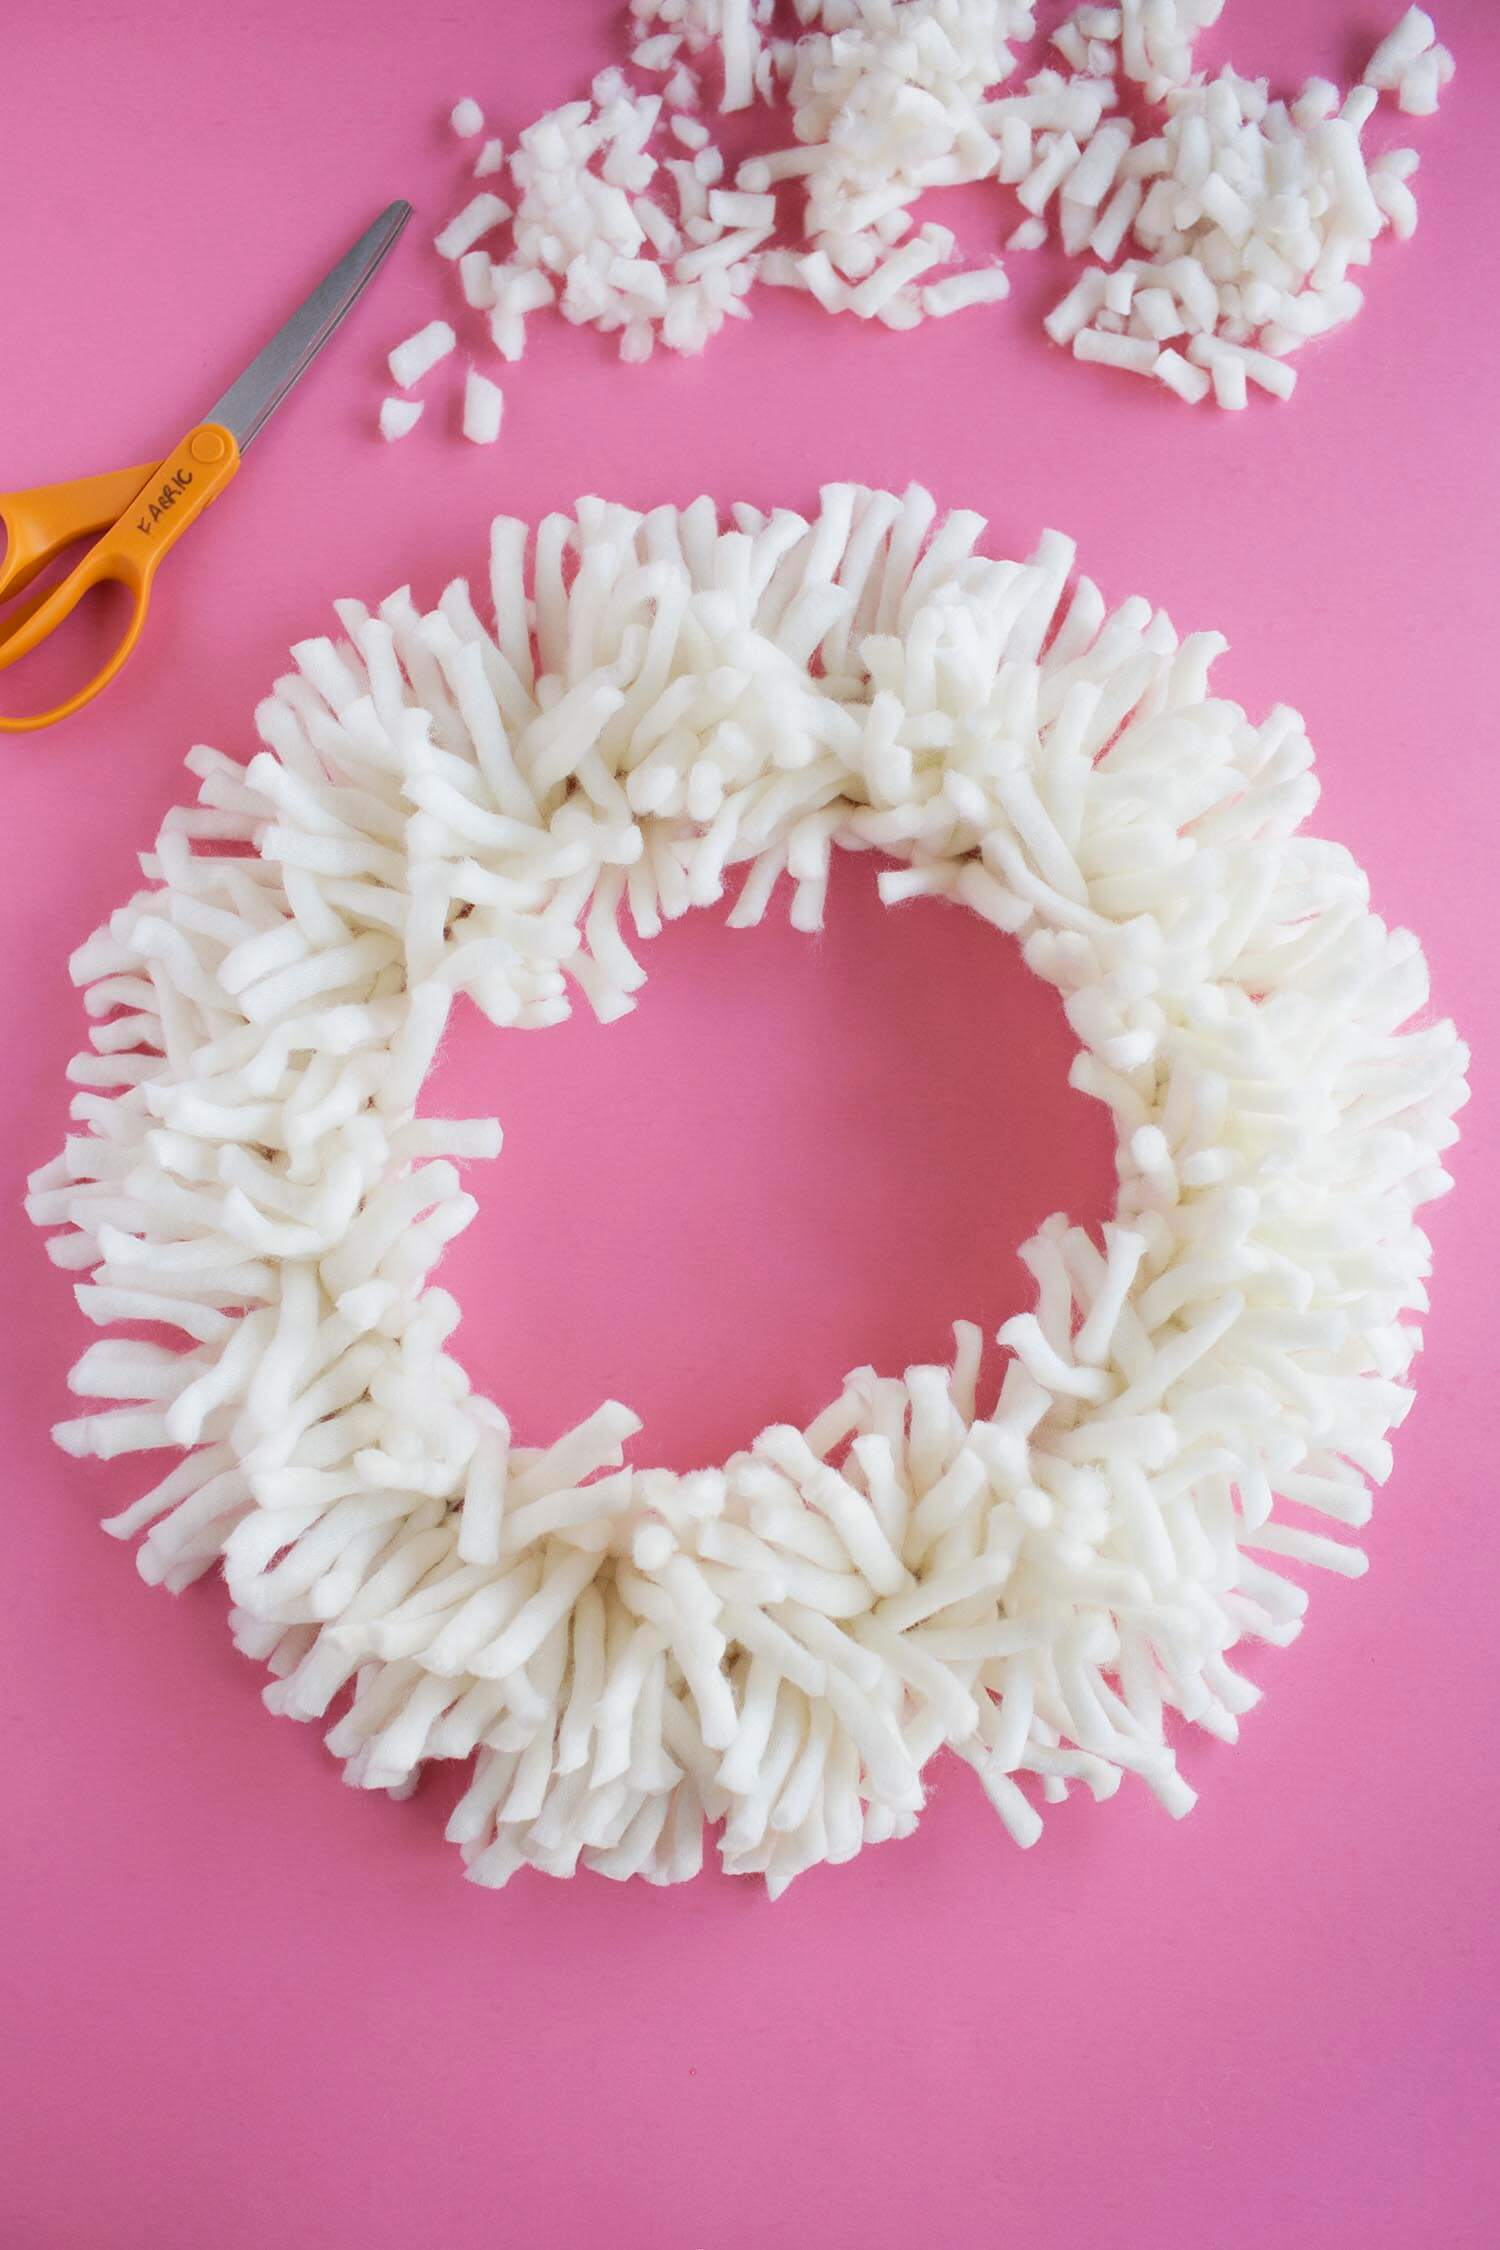 DIY shag rug wreath